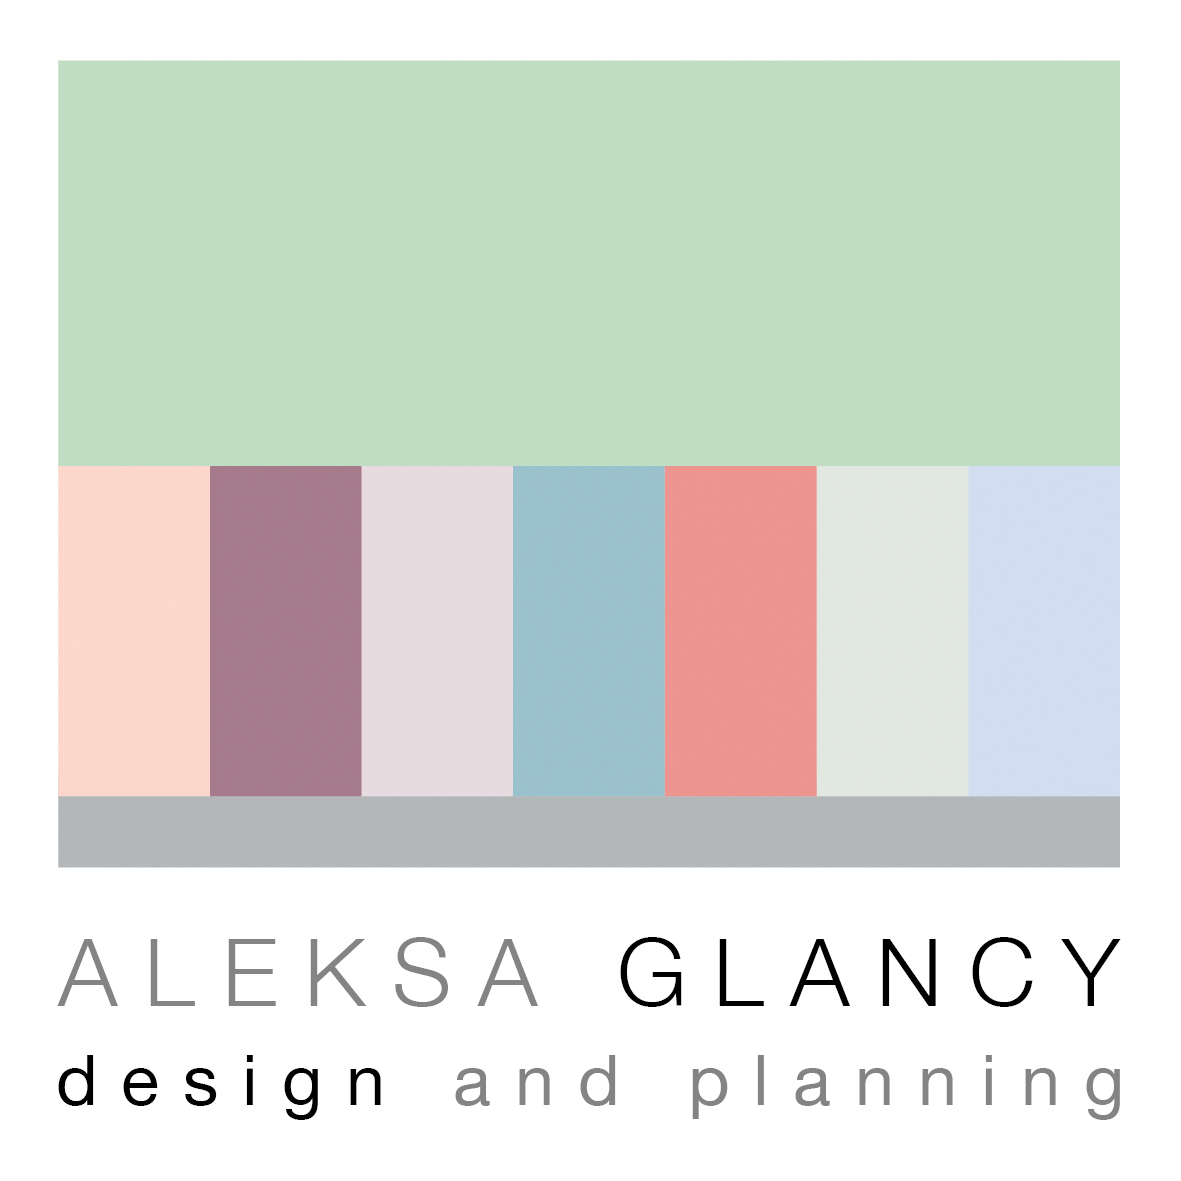 Aleksa Glancy Design